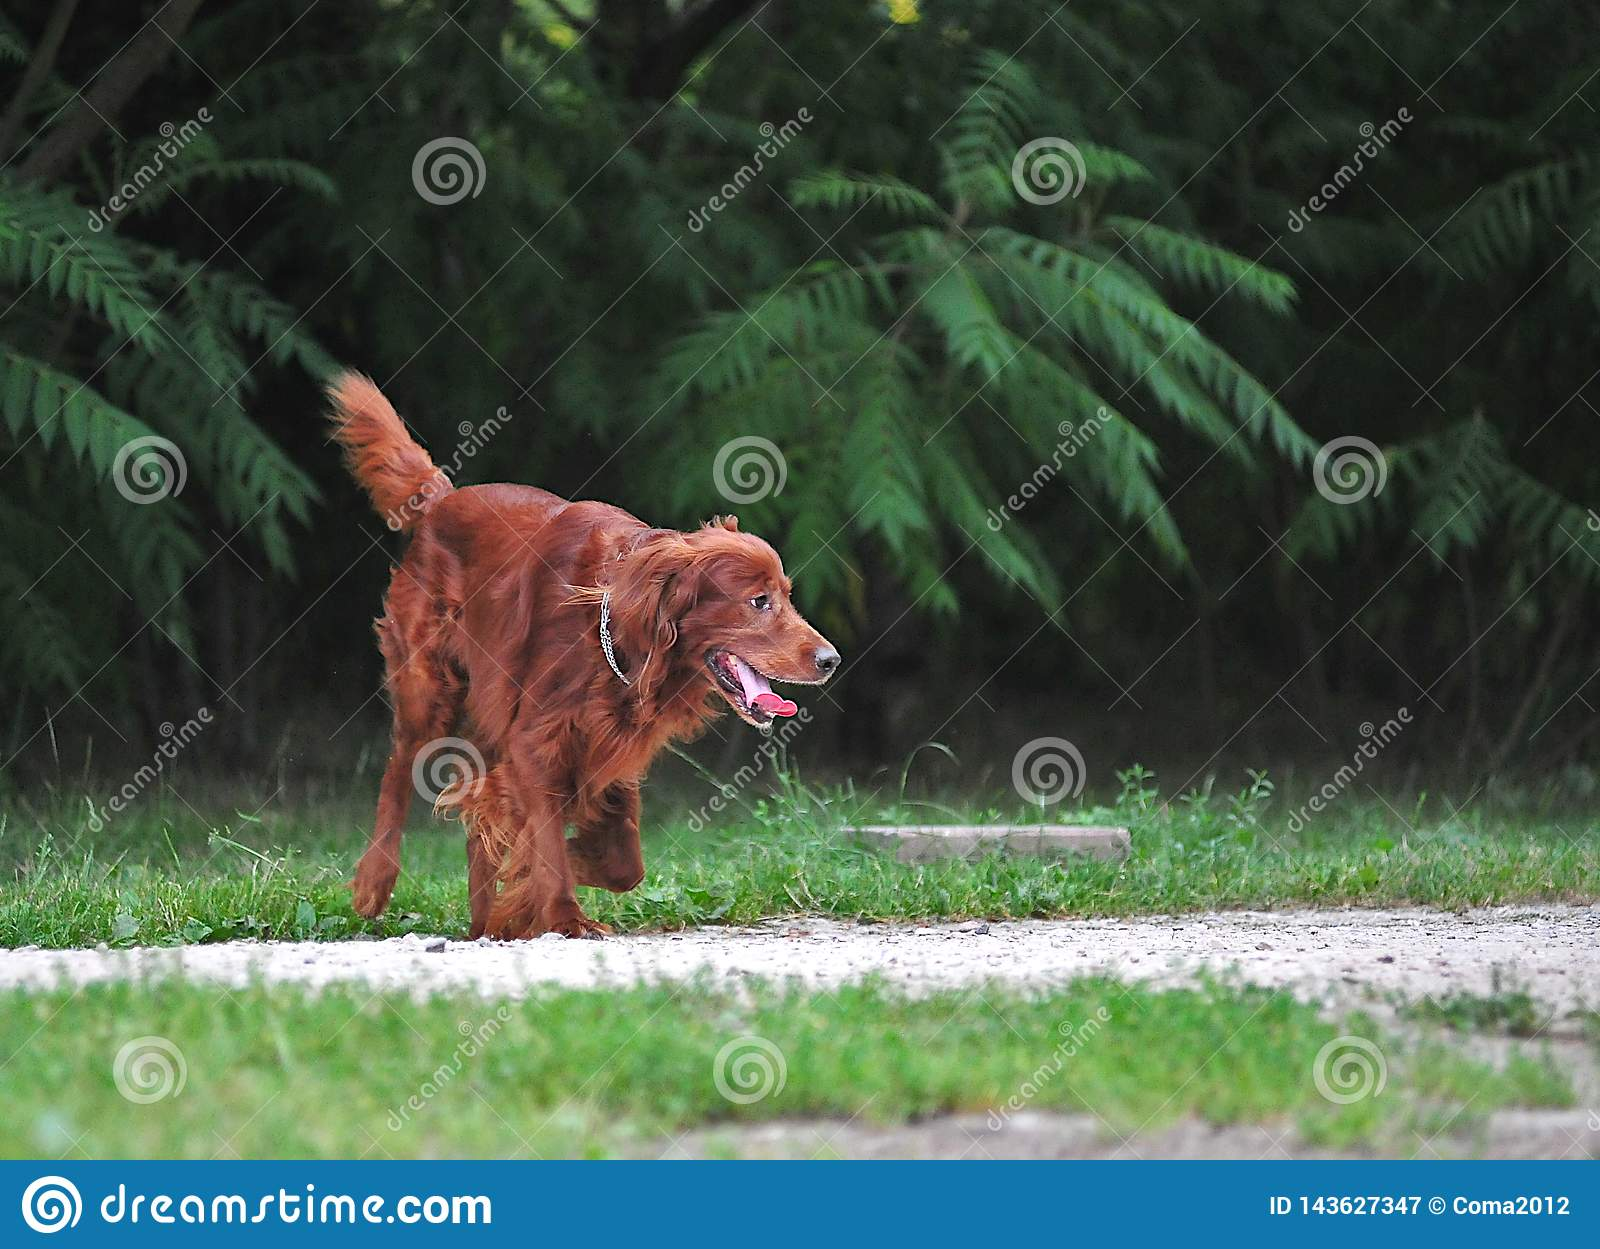 Red irish setter in action